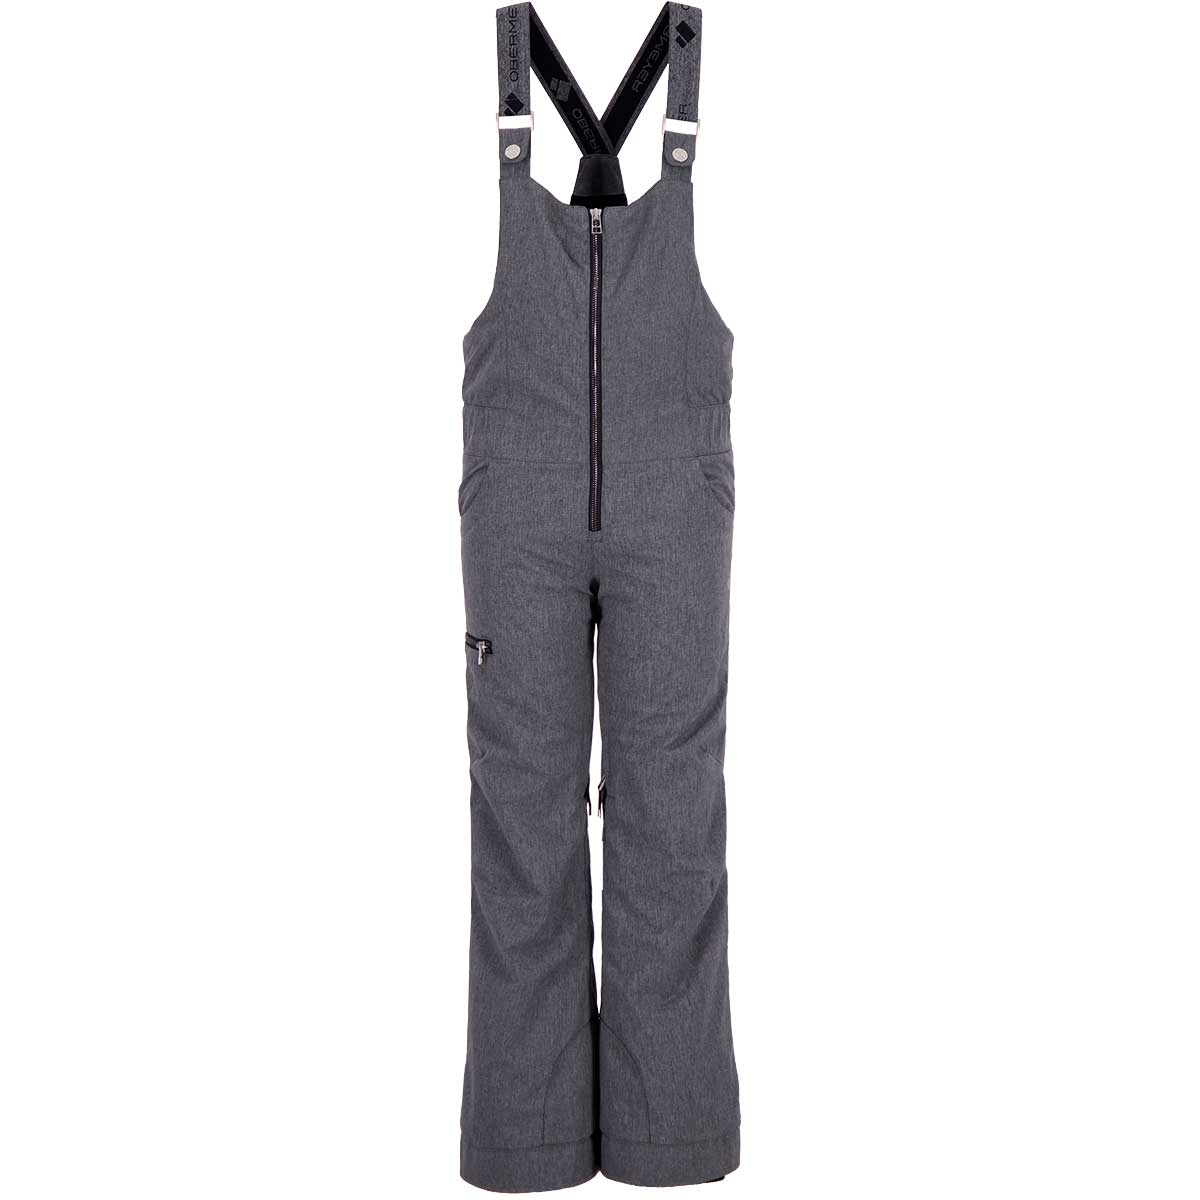 Obermeyer Teen Girls' Anya Bib Pant in Knight Black front view